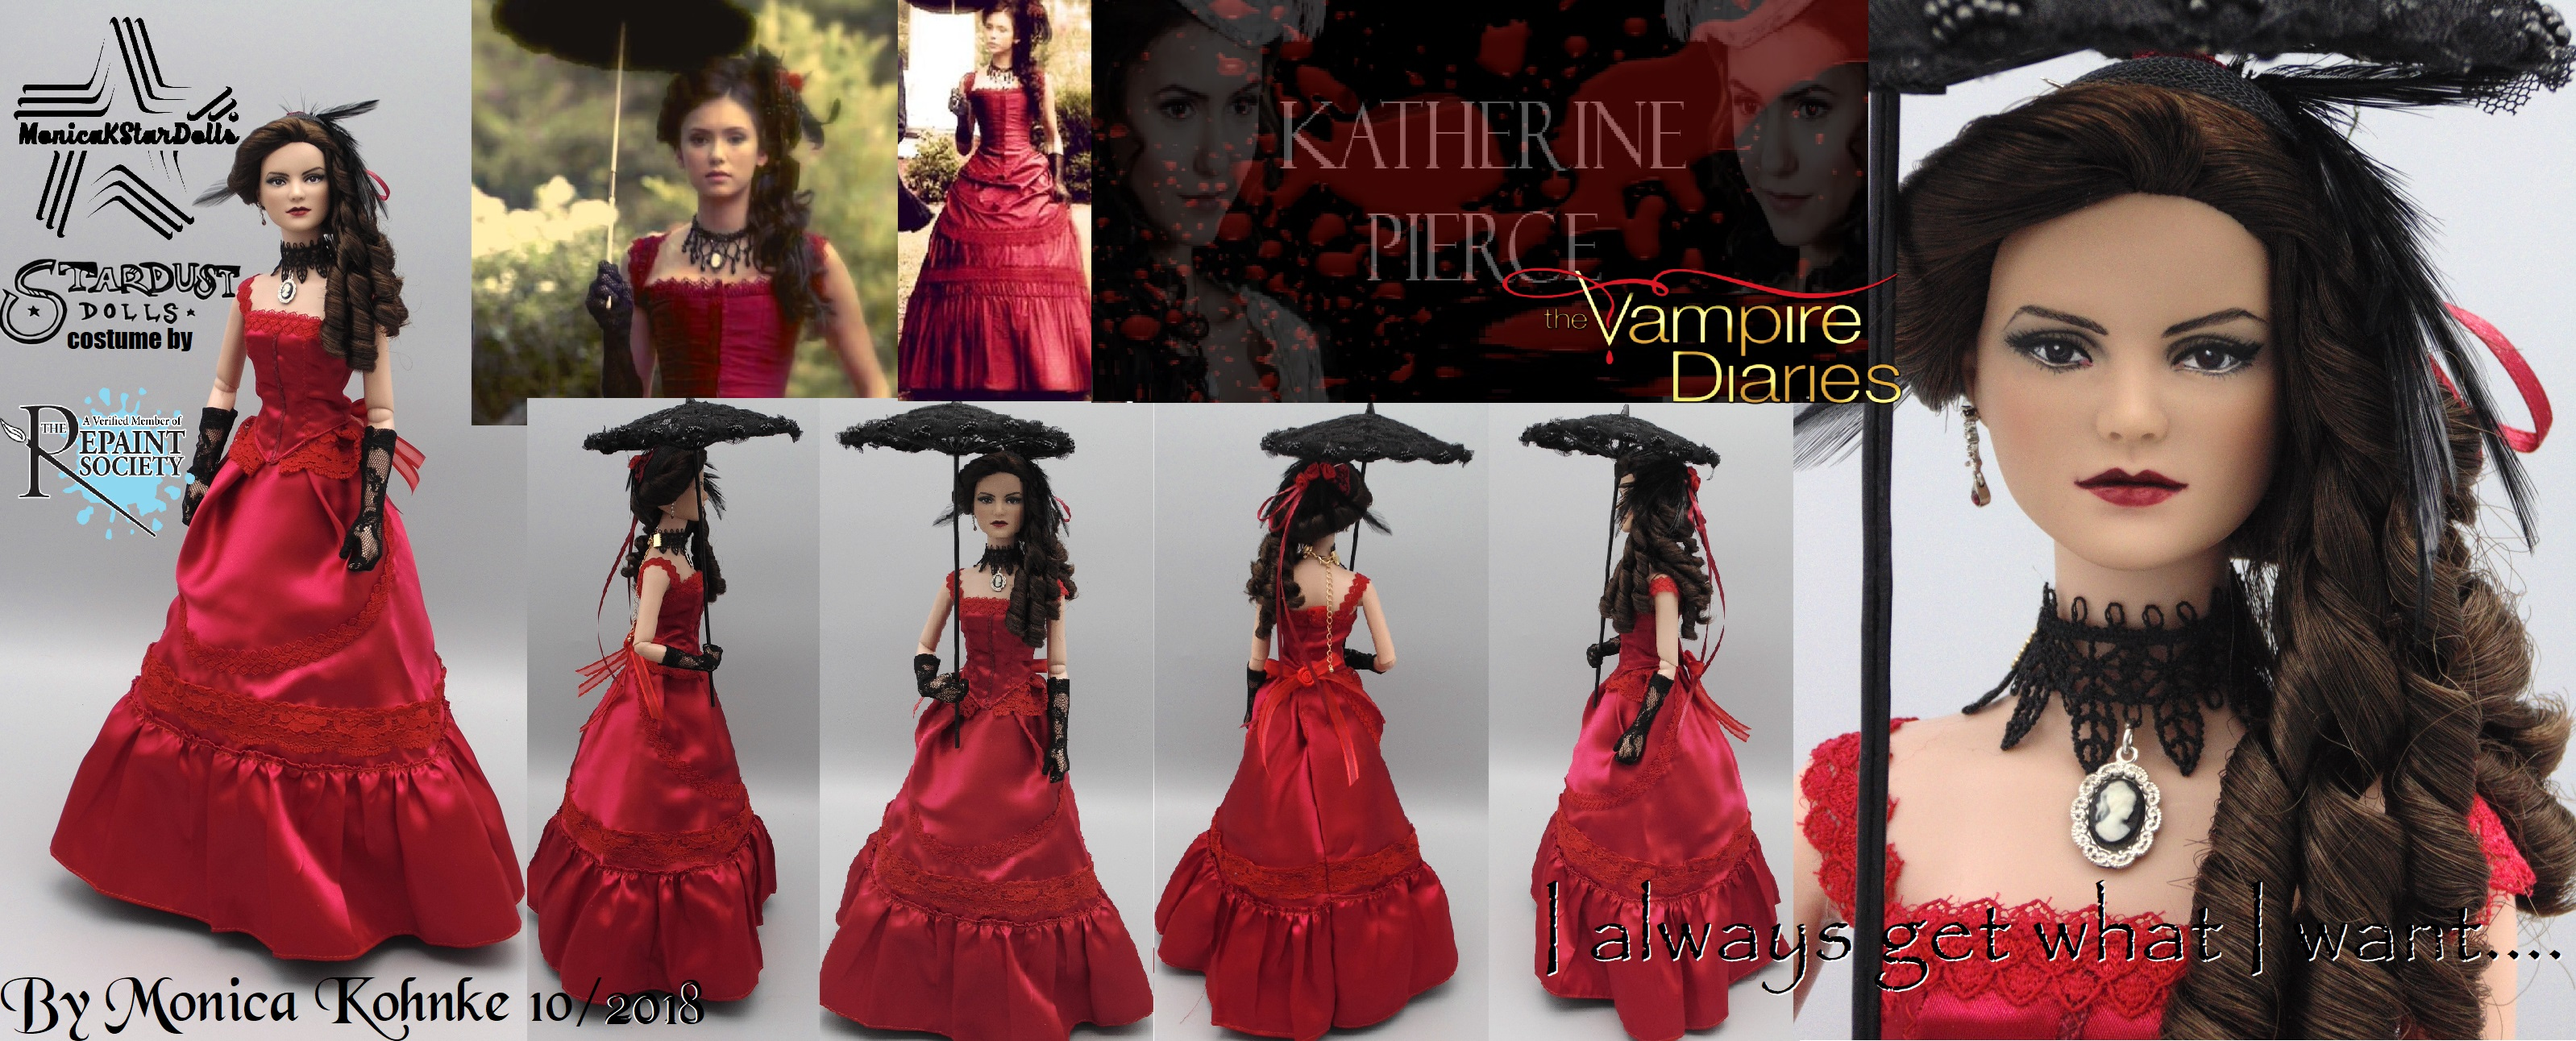 Katherine Pierce TVD